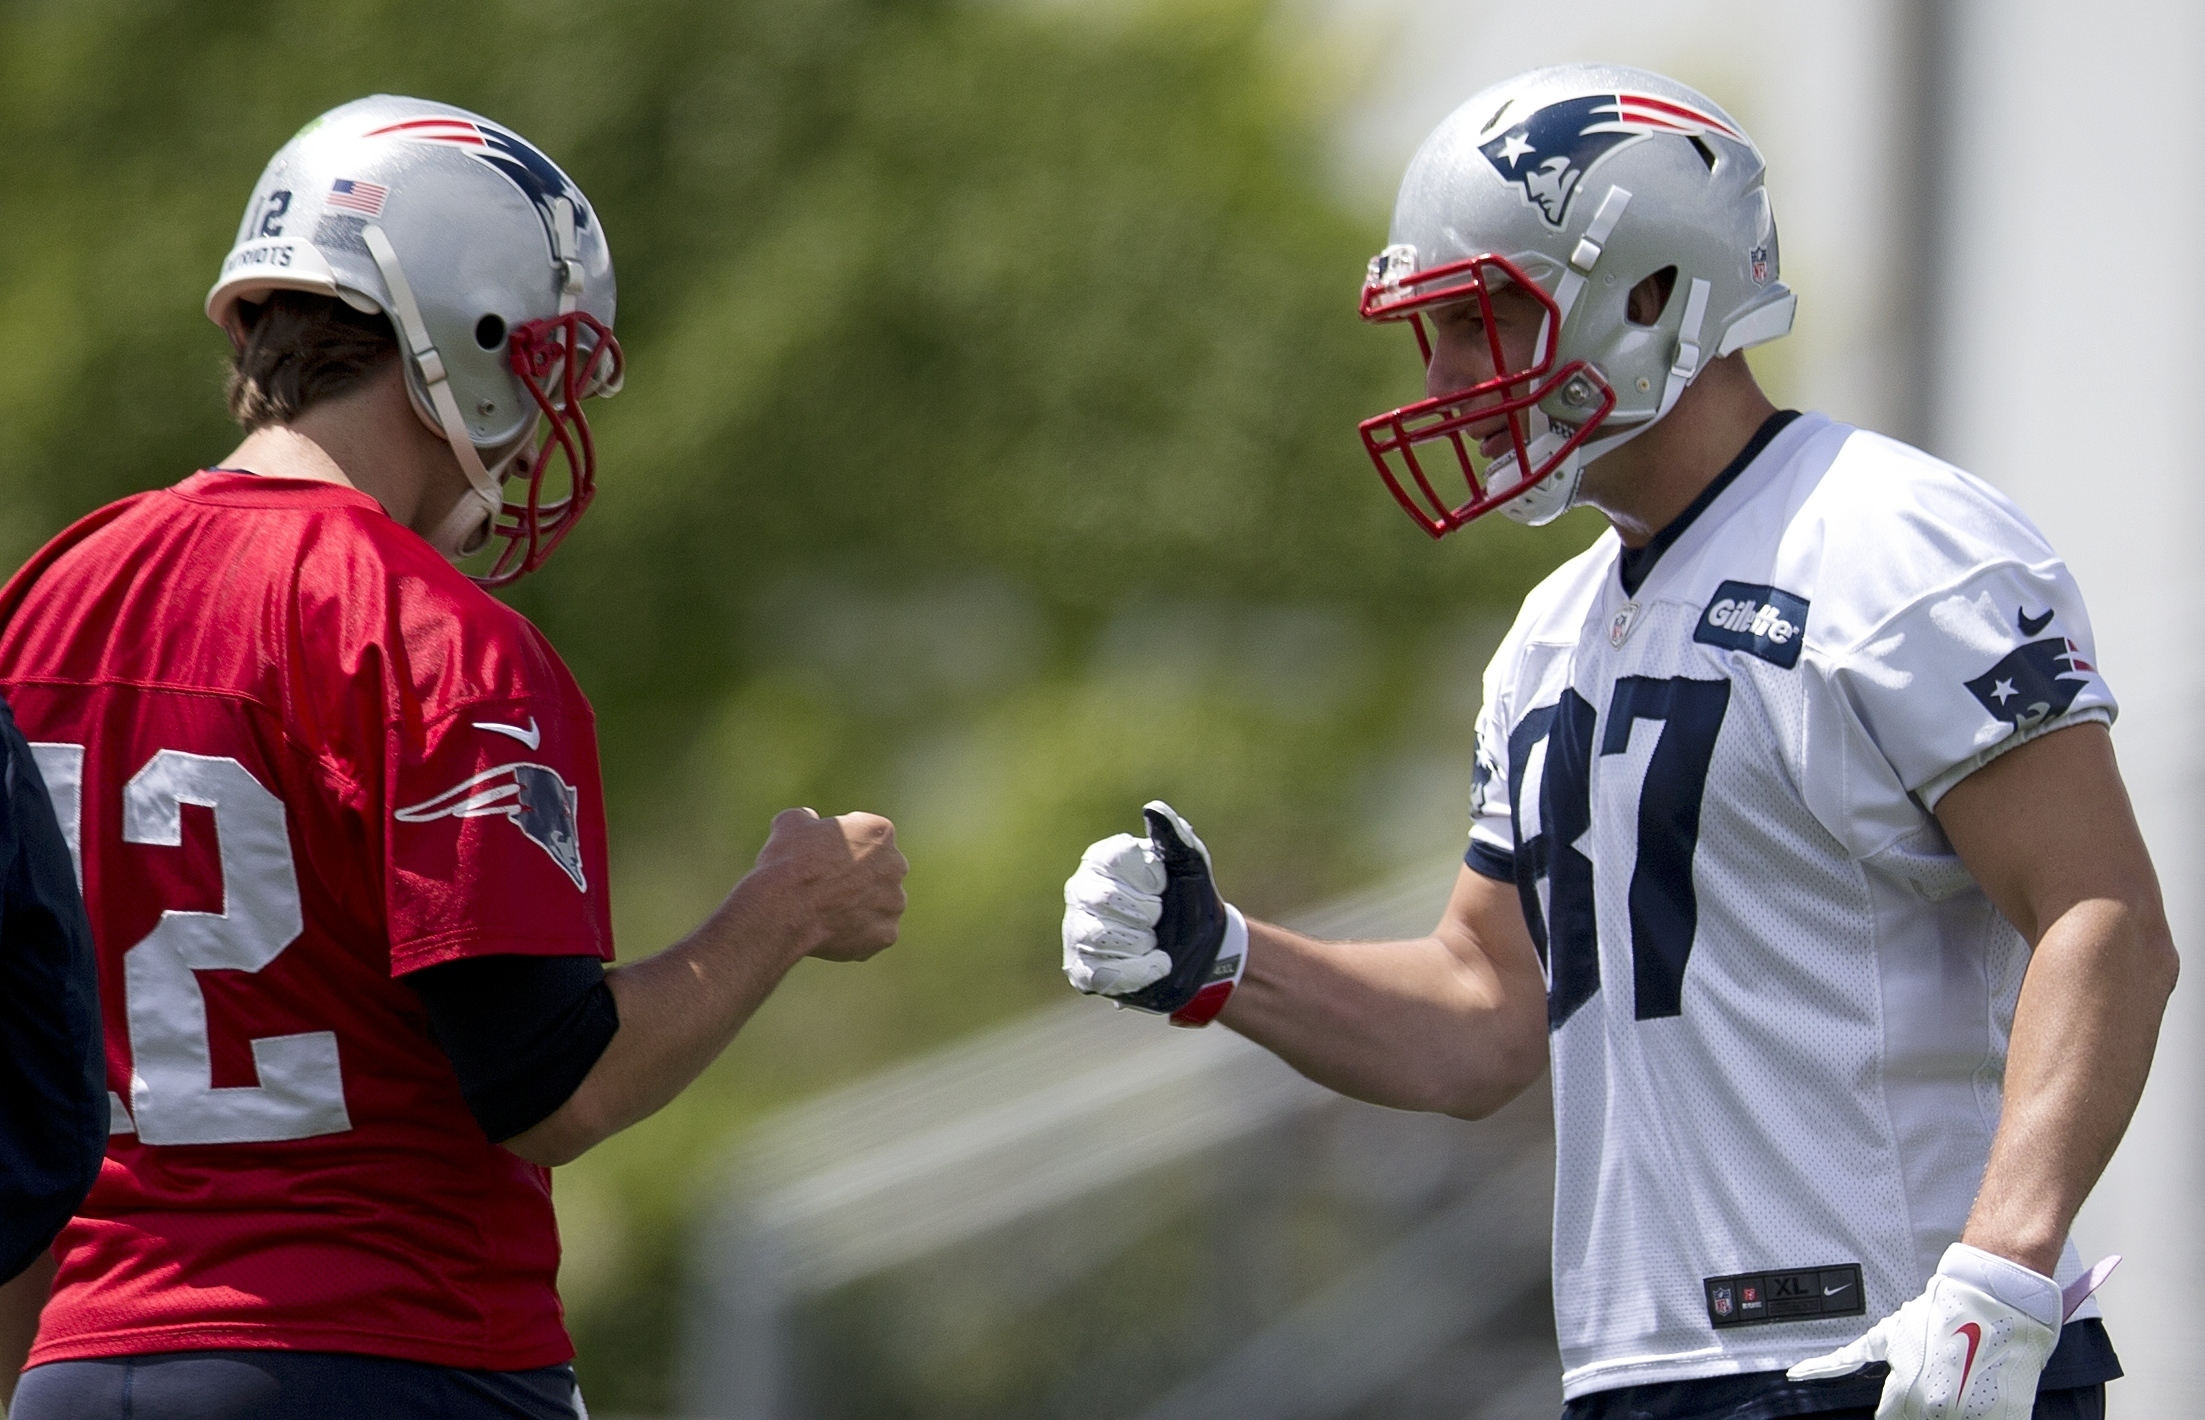 New England Patriots quarterback Tom Brady (12) bumps fists with tight end Rob Gronkowski (87) during an NFL football practice Monday, June 13, 2016, in Foxborough, Mass. (AP Photo/Michael Dwyer)